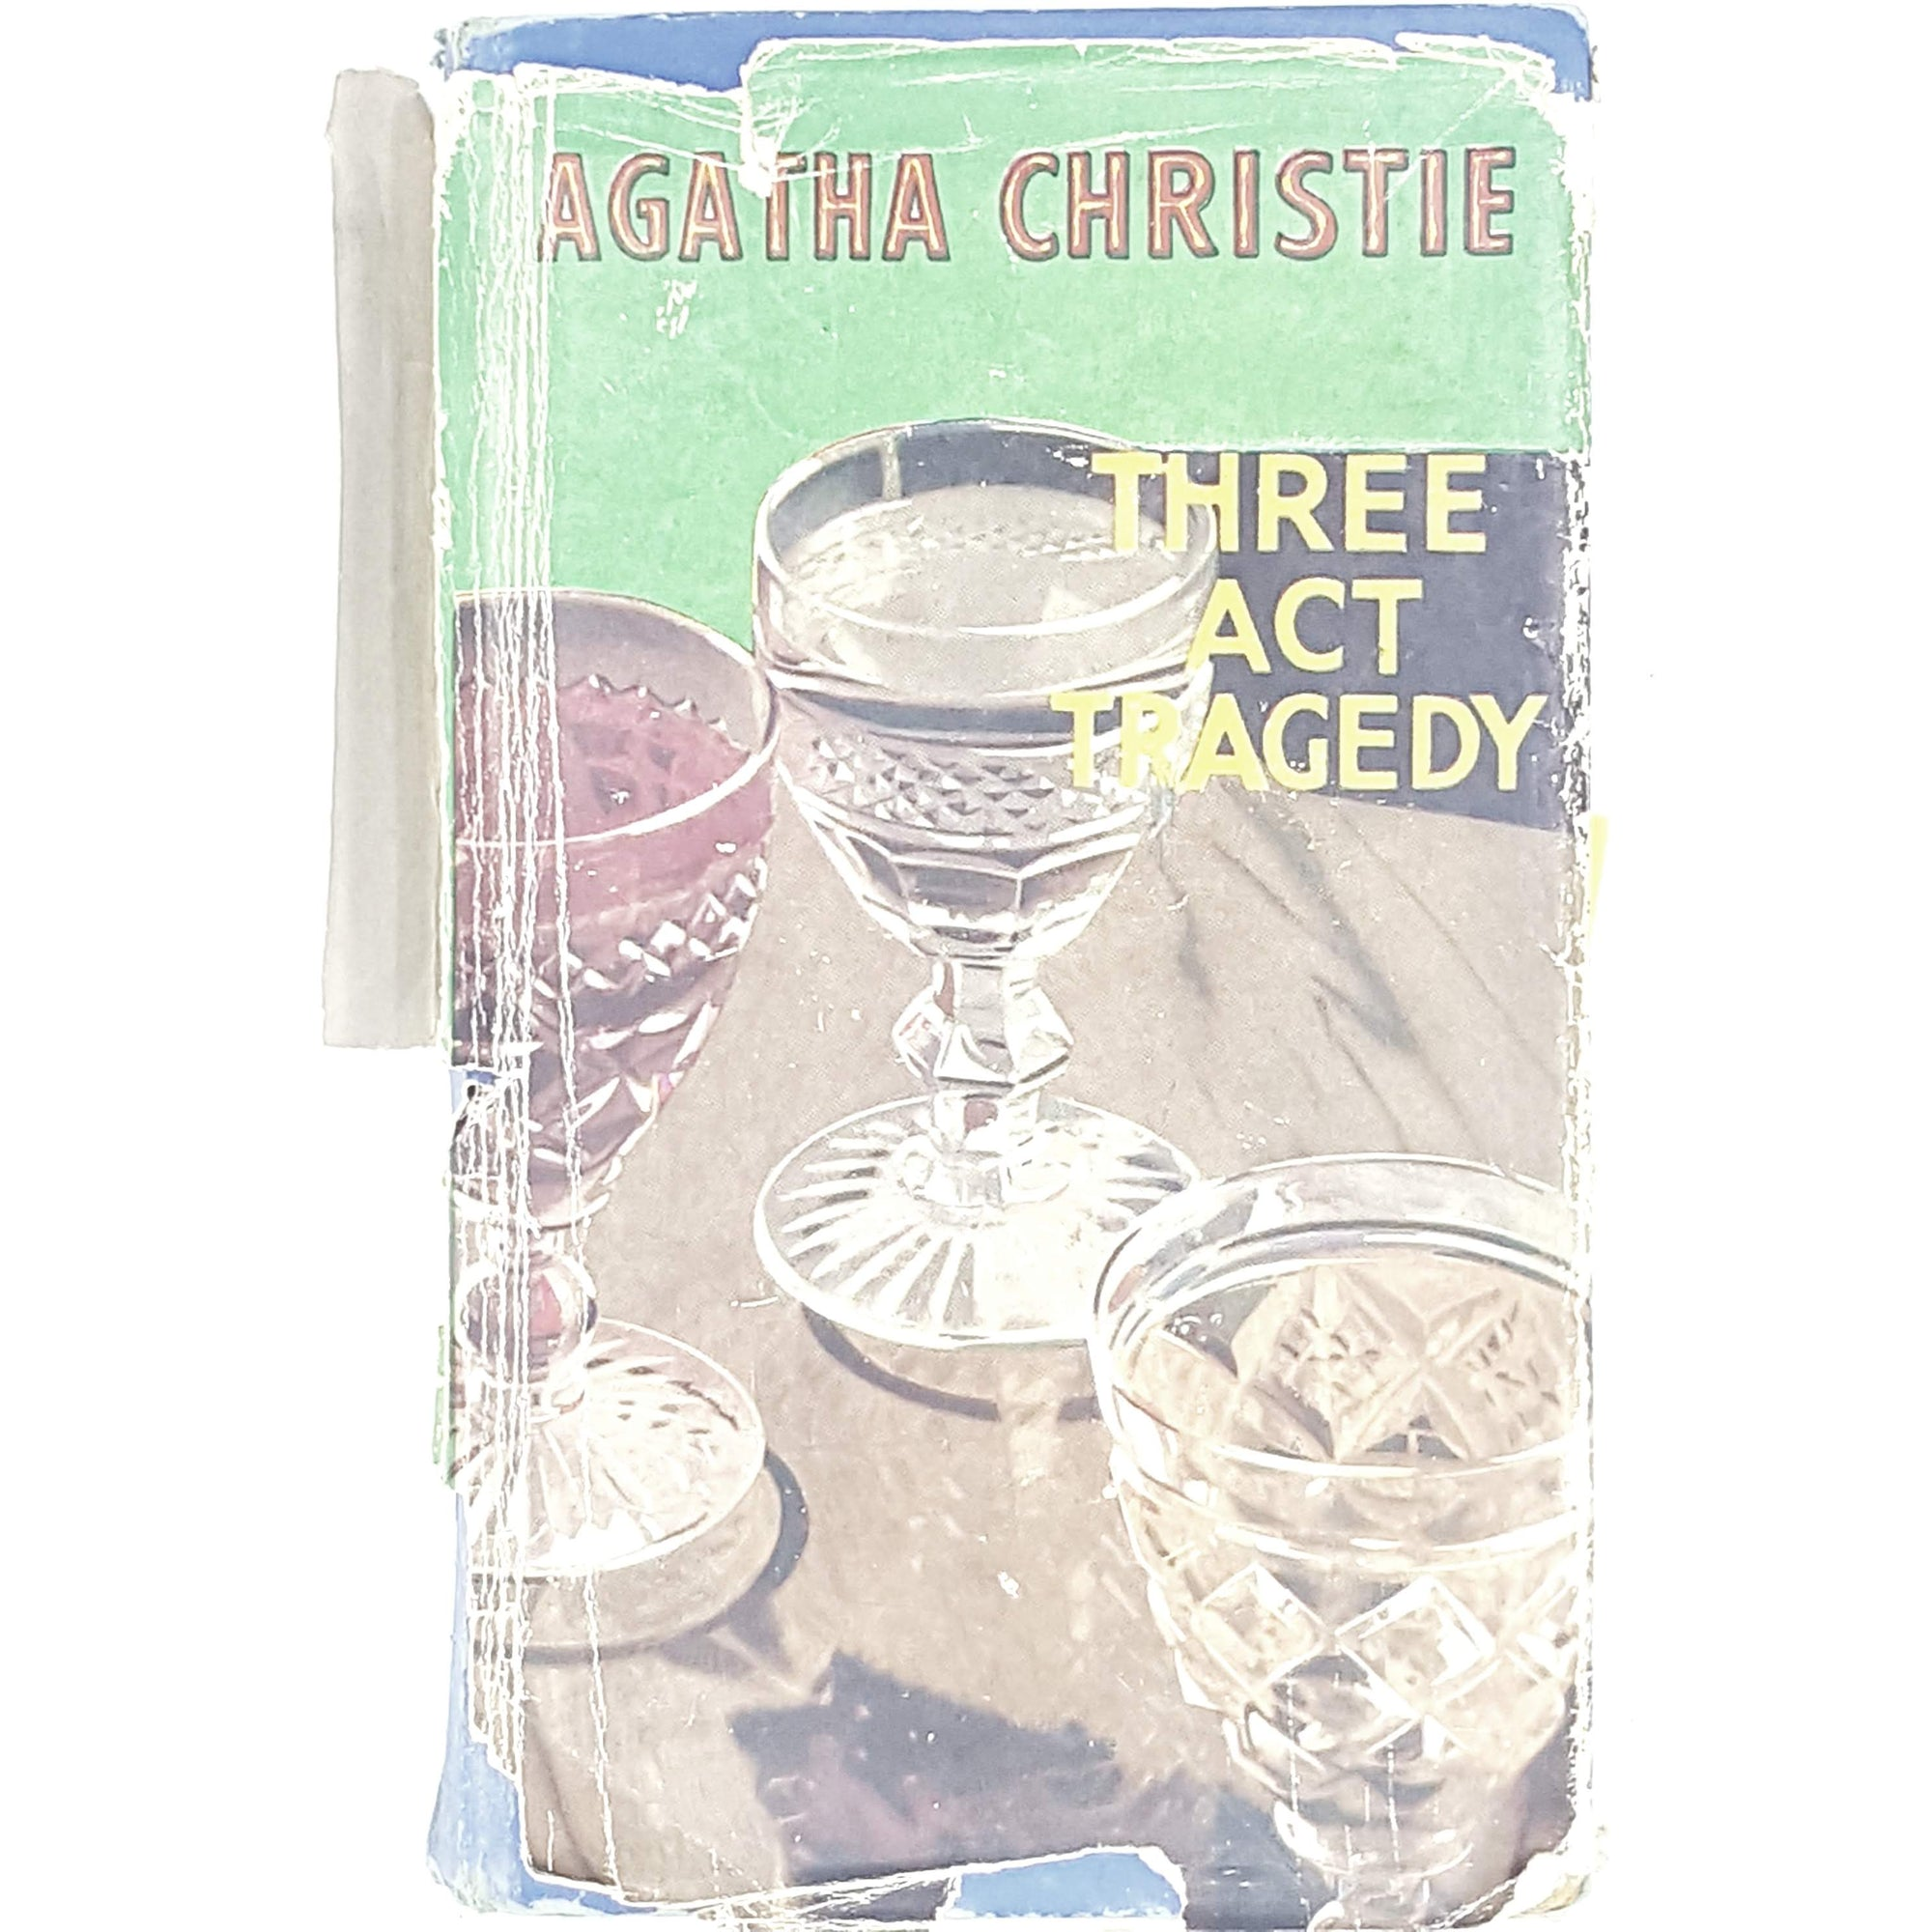 Agatha Christie's Three Act Tragedy